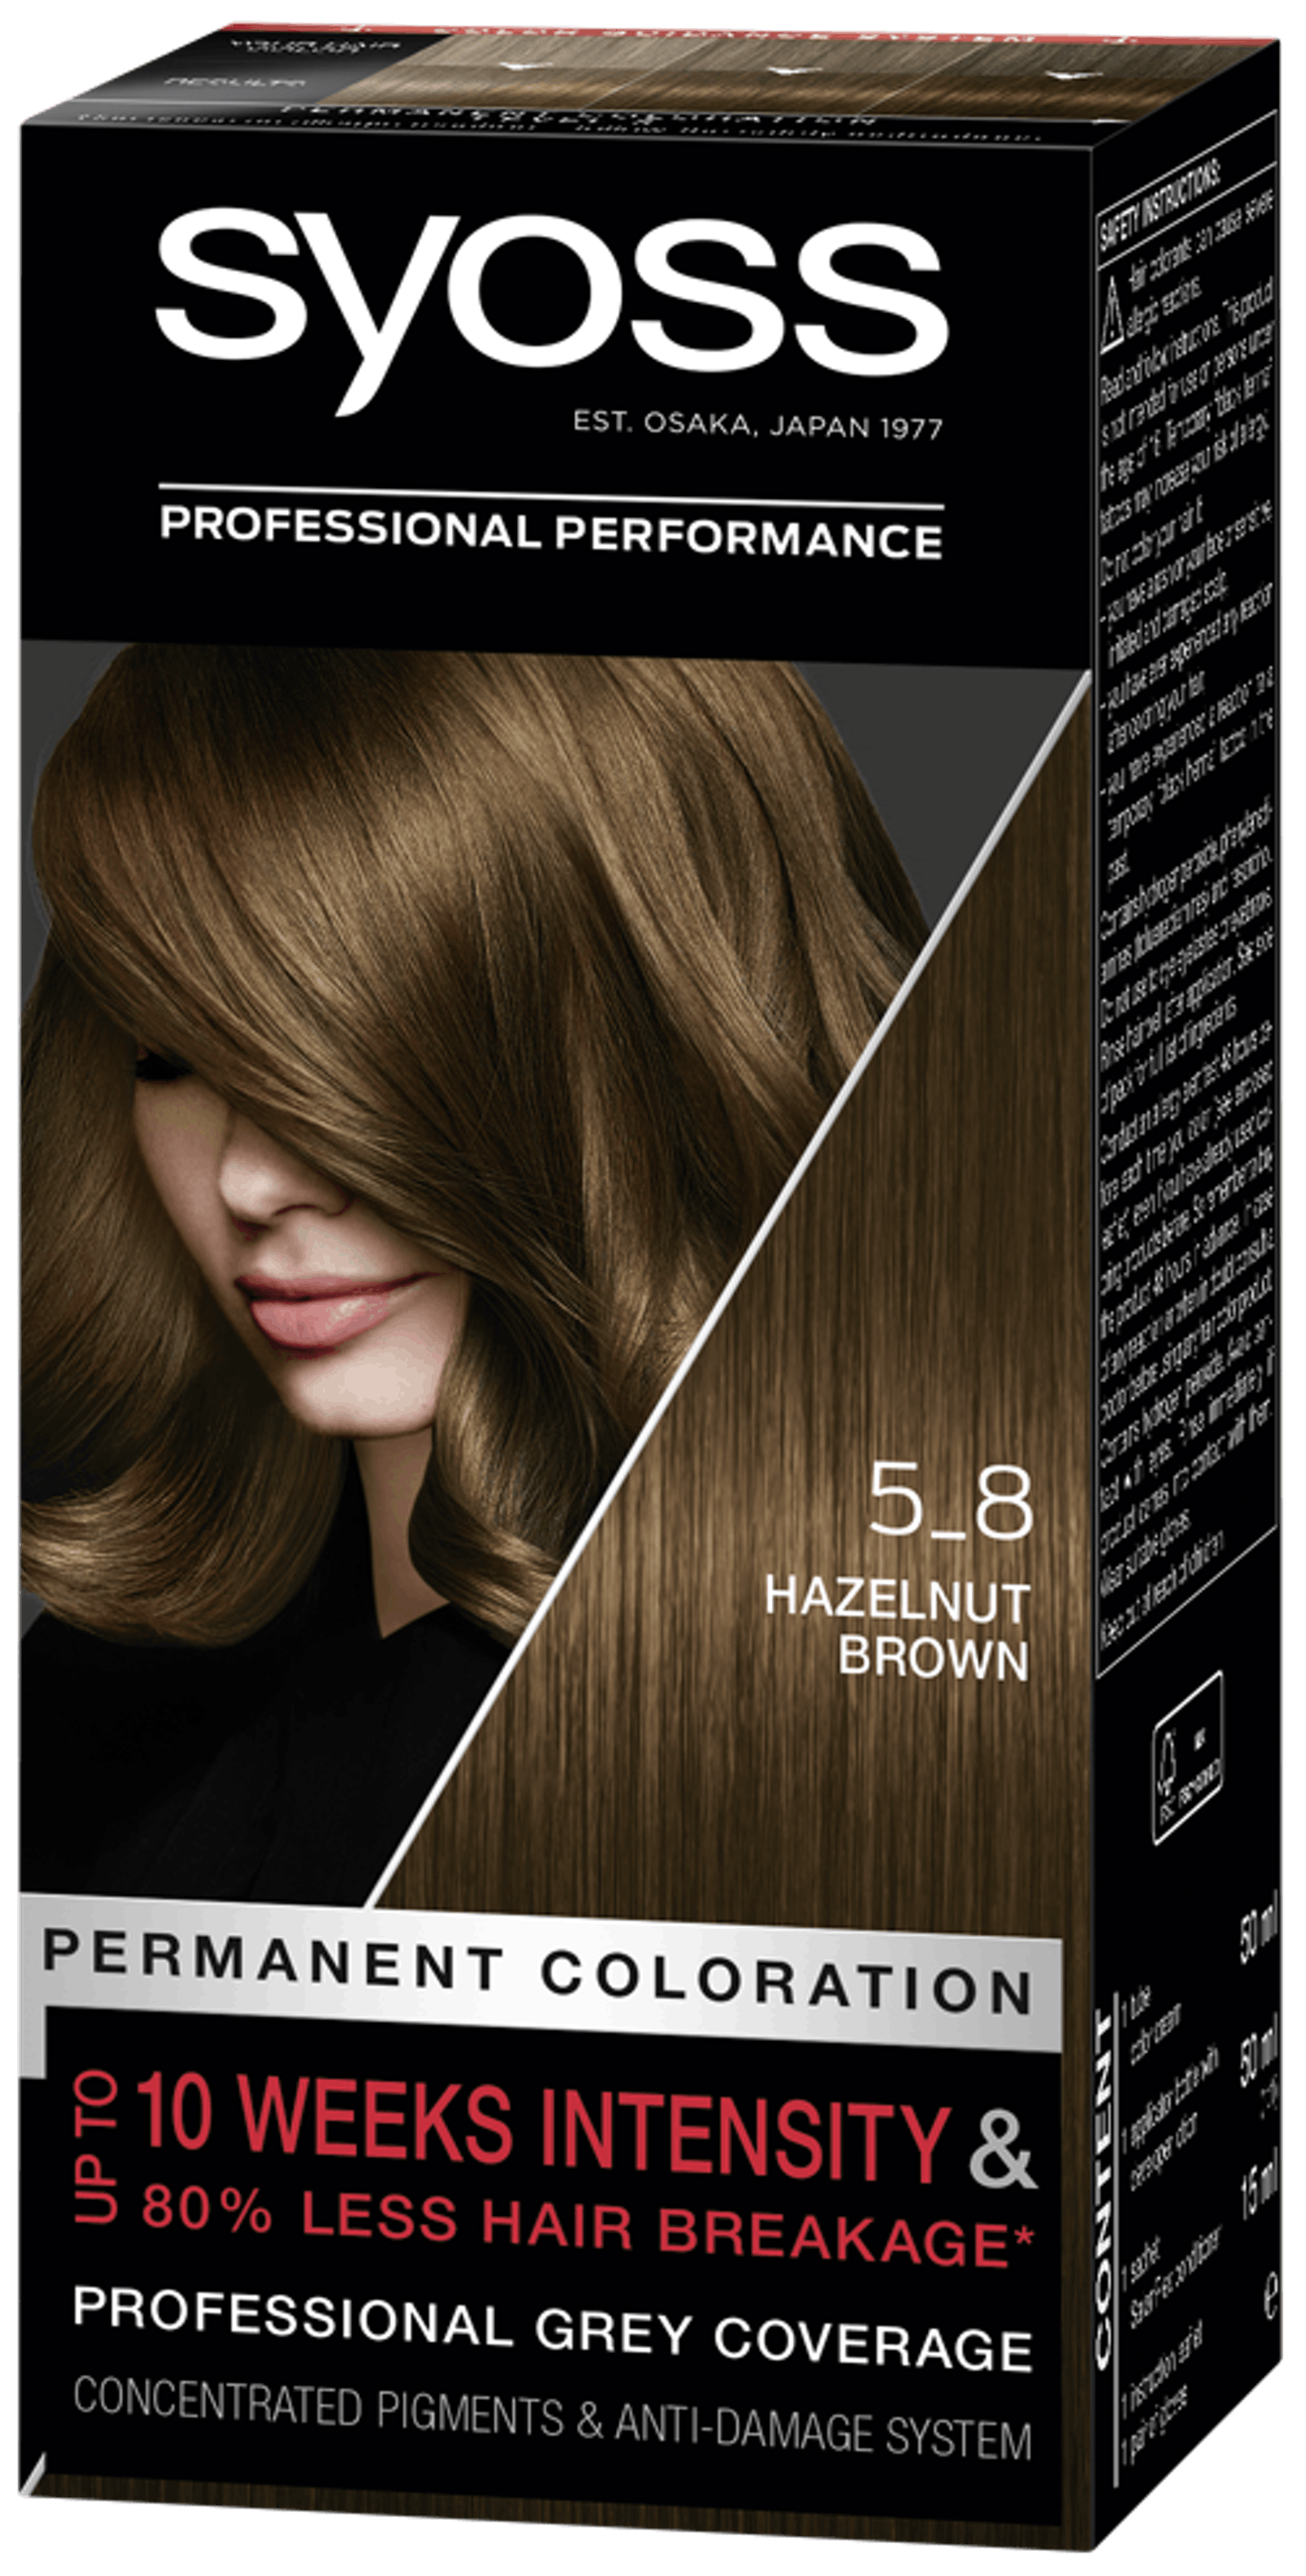 Syoss Permanent Coloration 5_8 Hazelnut Brown